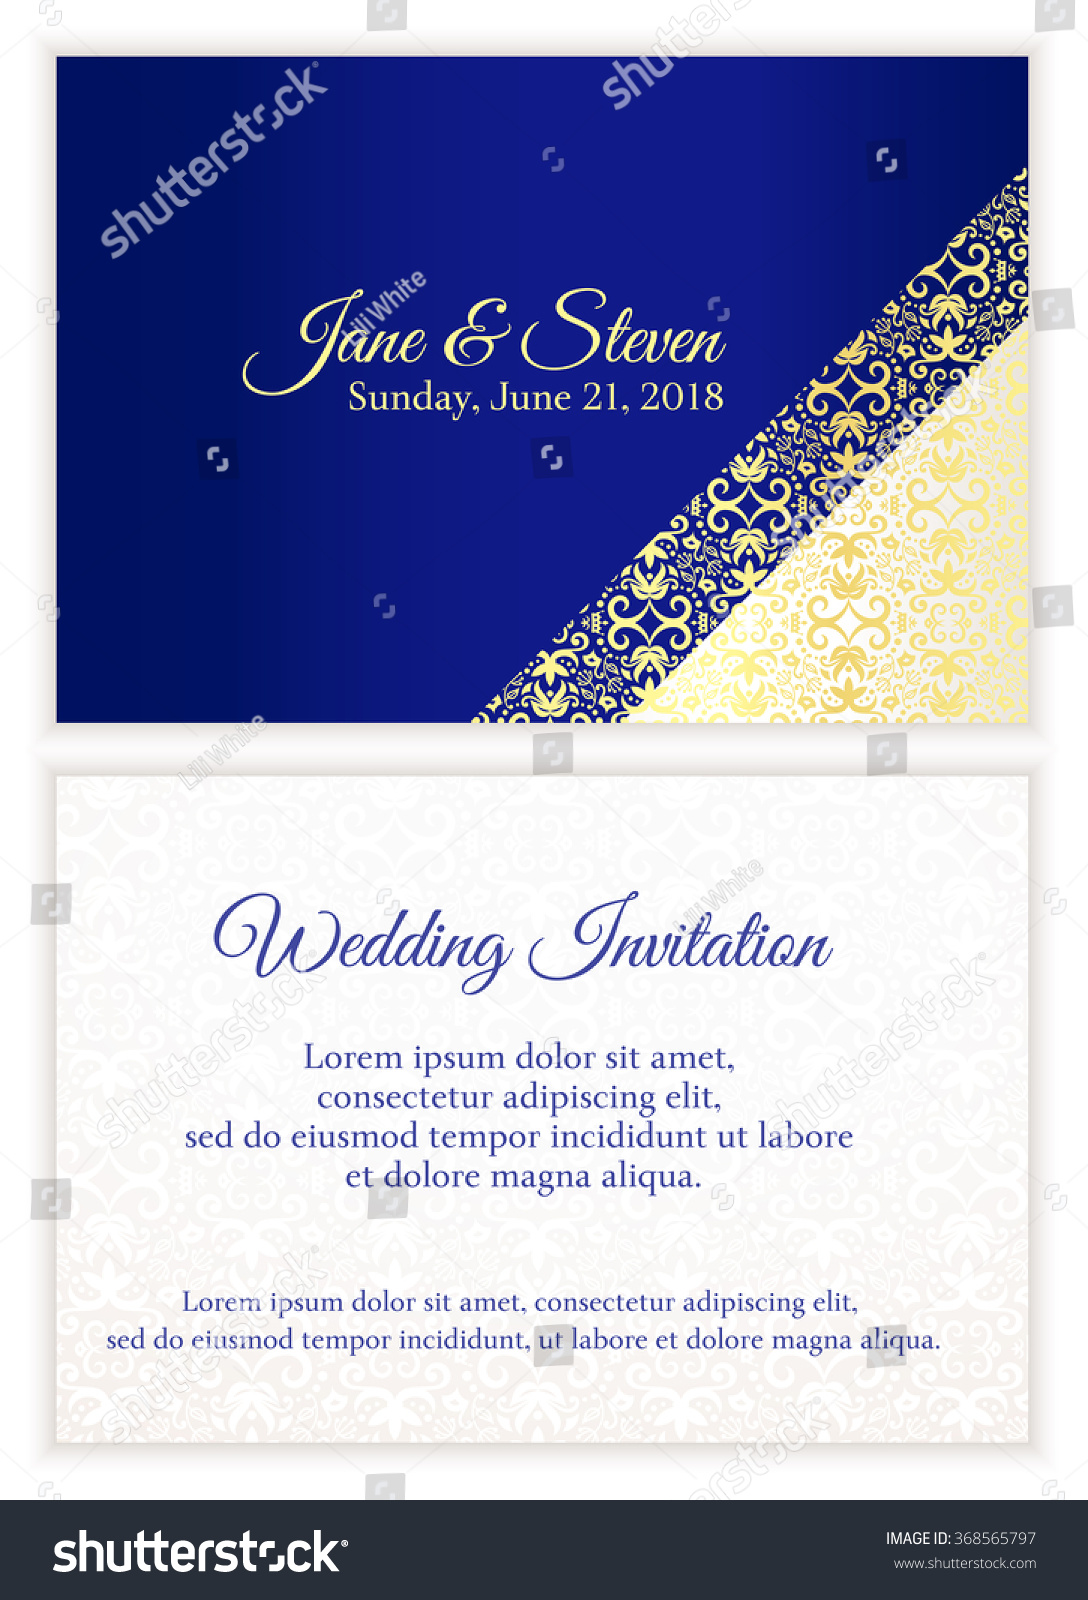 Blue Wedding Invitation With Luxury Golden Lace In Corner And Damask Pattern Inside Of The Card